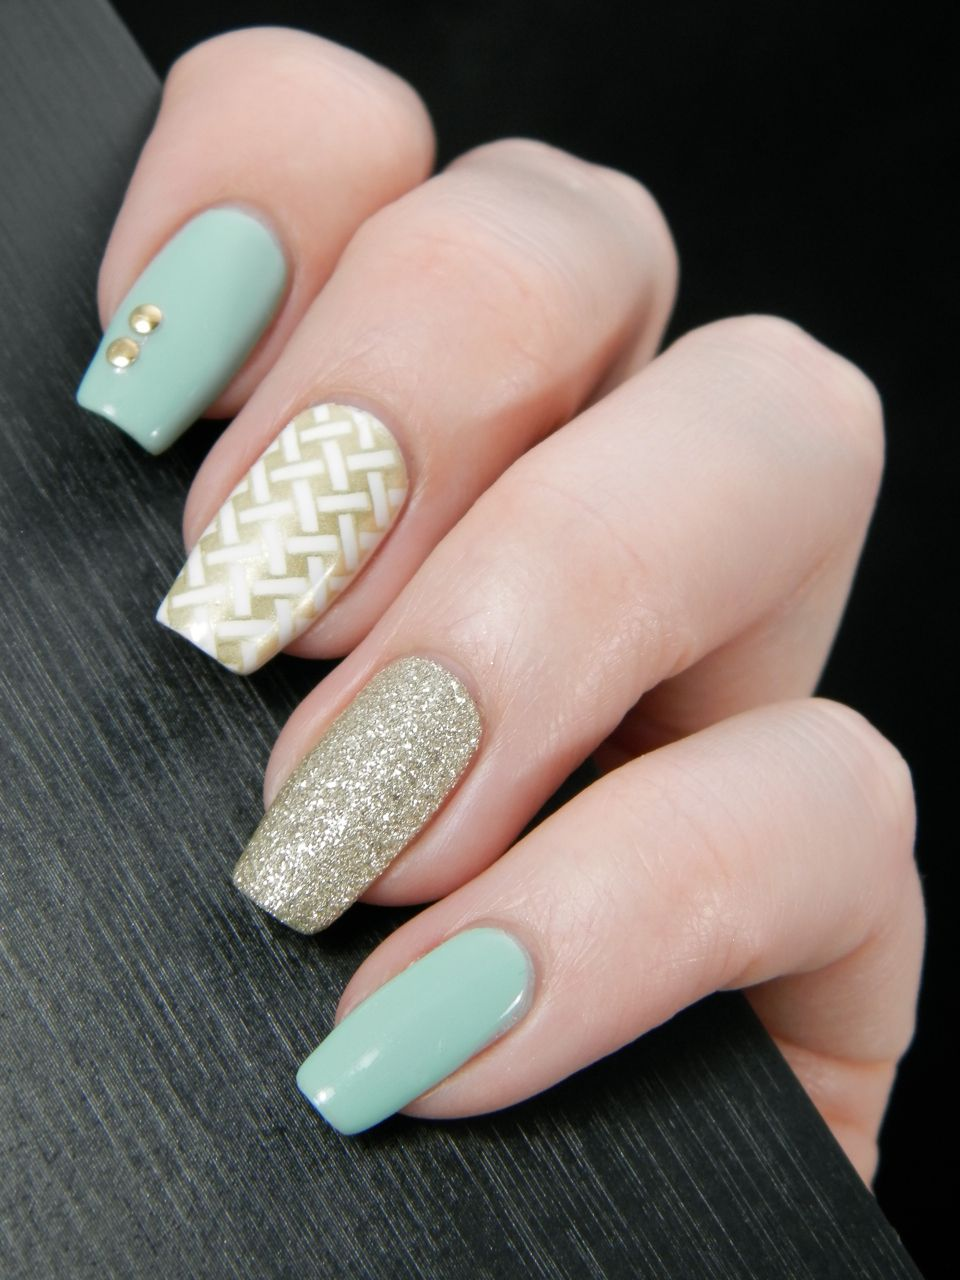 Better Nail Day | Nails | Pinterest | Nail nail, Nails inspiration ...